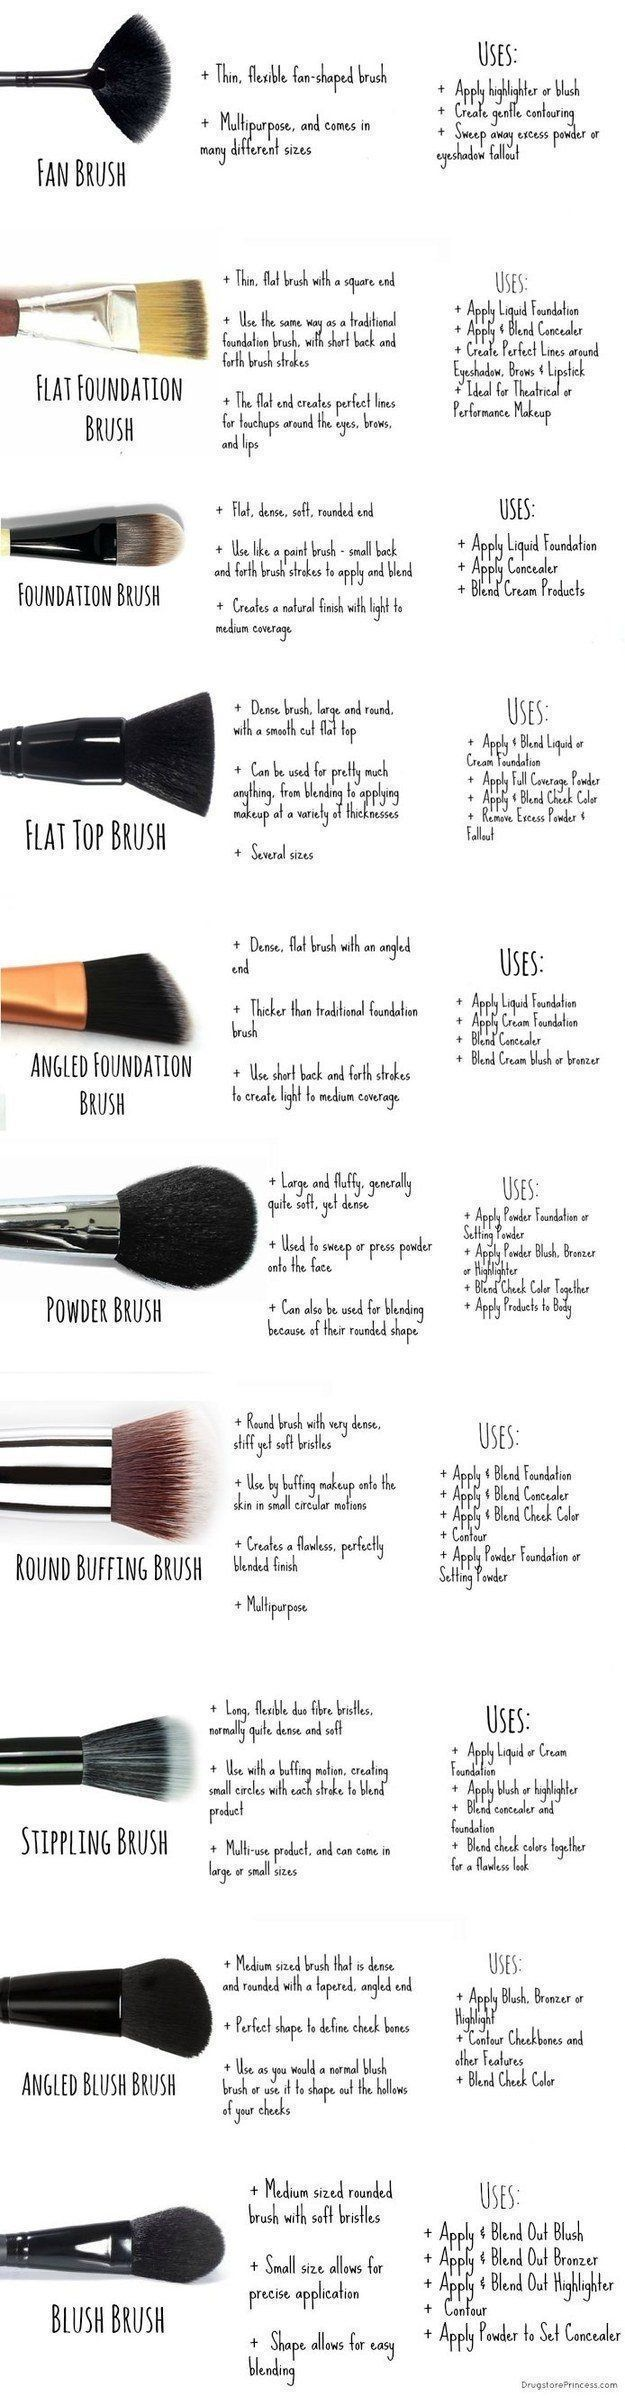 Makeup Brushes 101 | Detailed Guide On How To Use Your Set - Best Makeup Guide For Beginners by Makeup Tutorials at makeuptutorials.c...